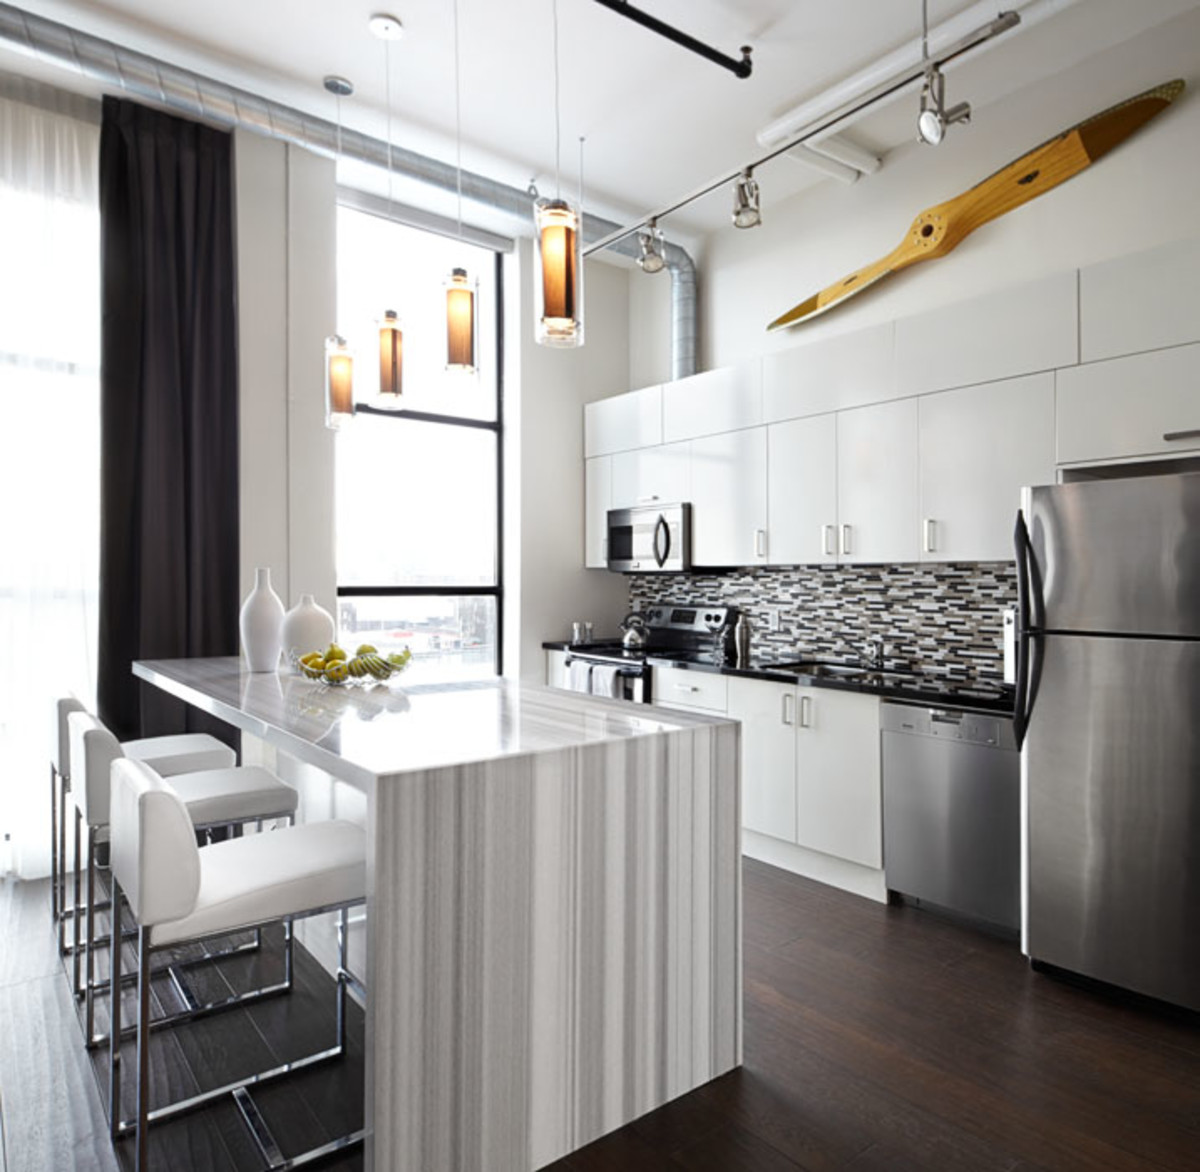 Condo Design Toronto, Tips For Designing In Small Spaces